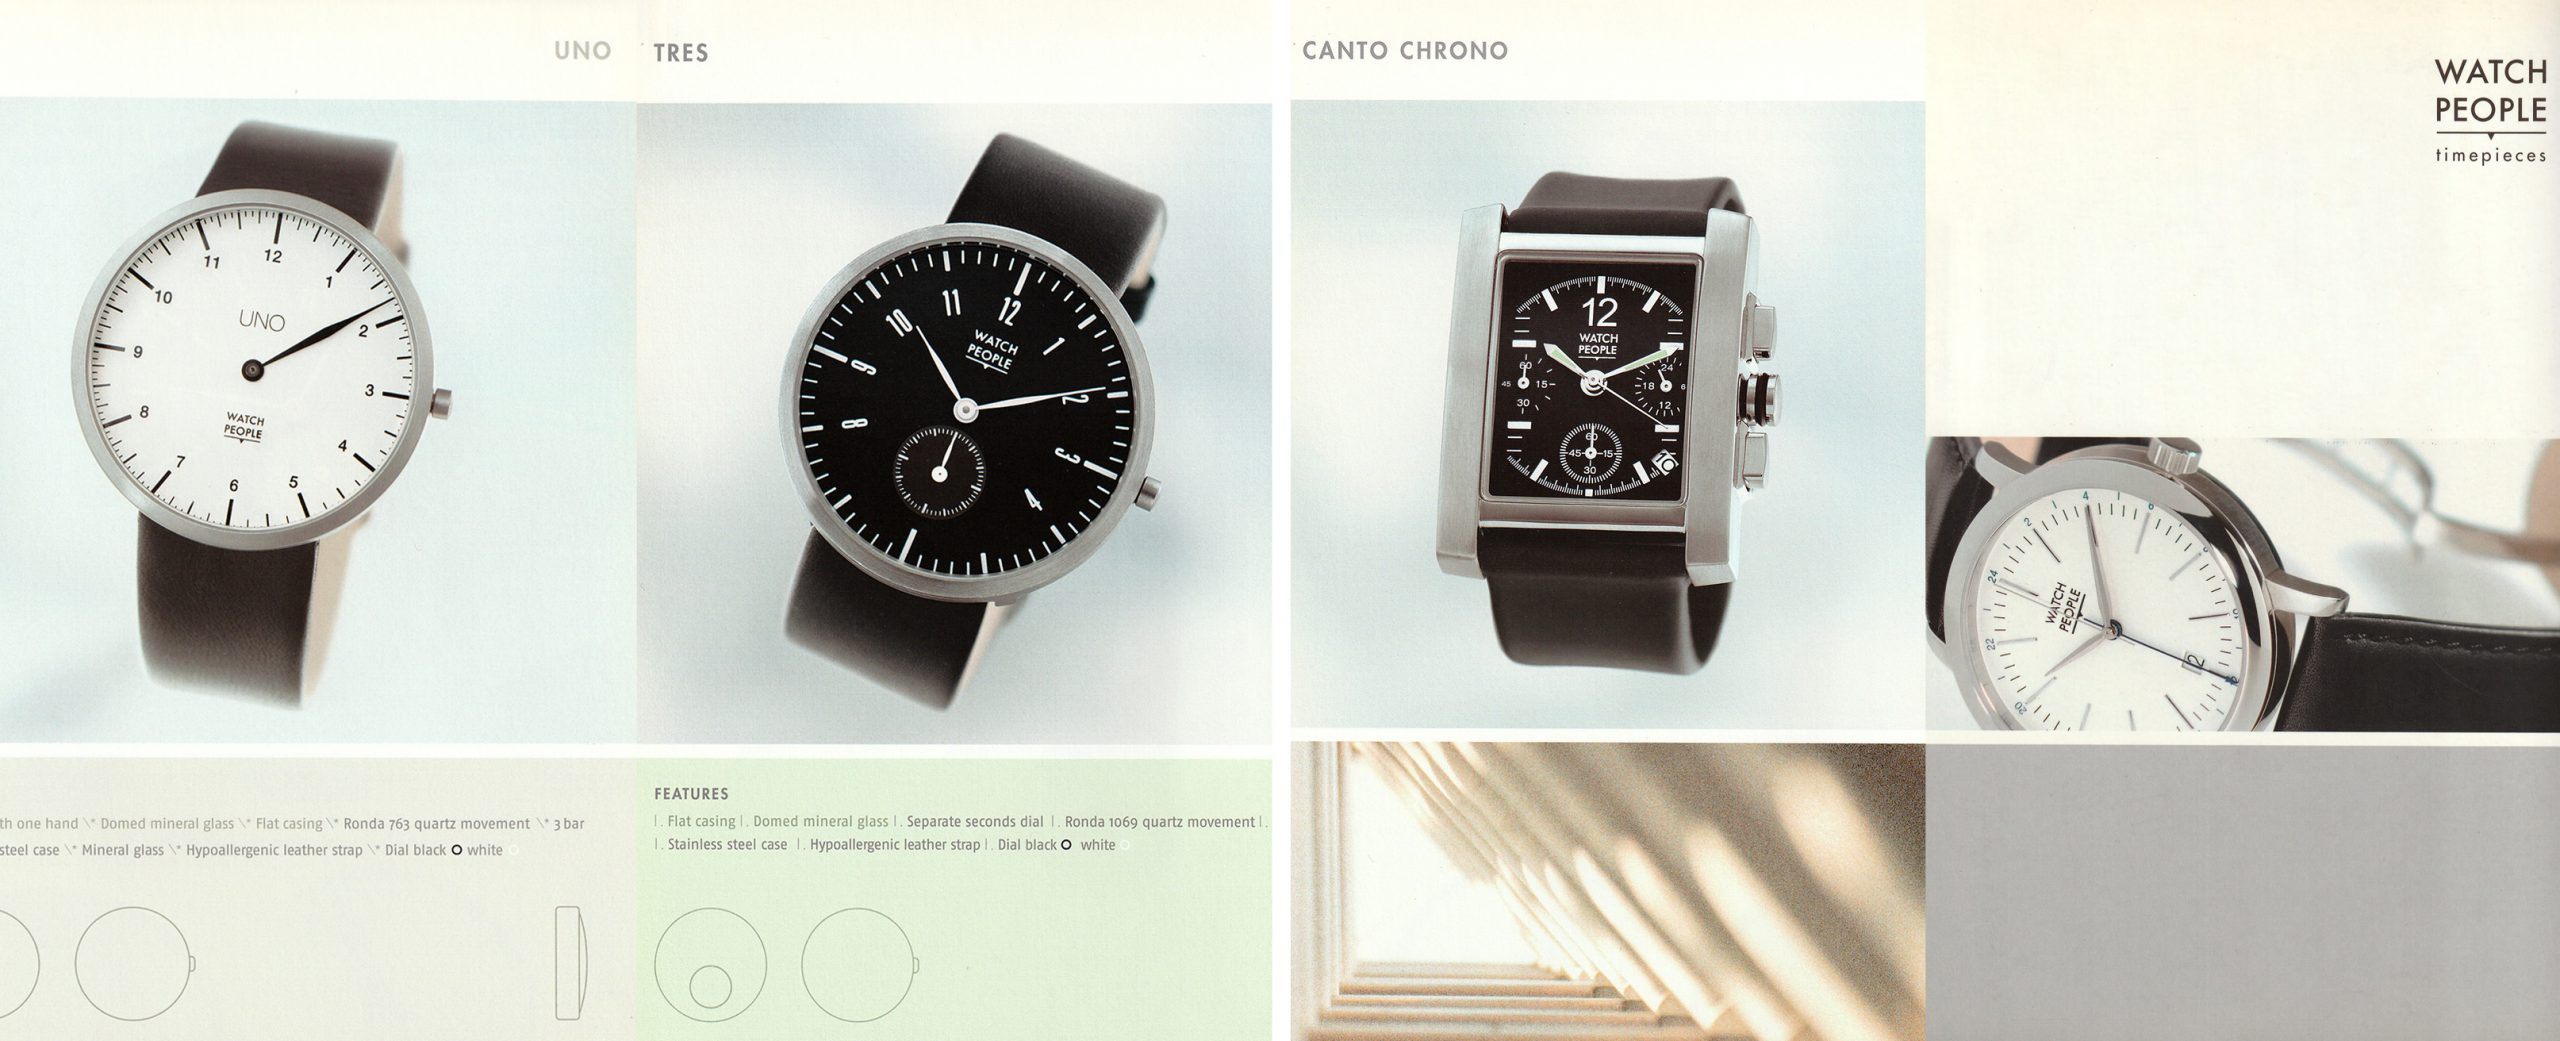 Watchpeople_05b